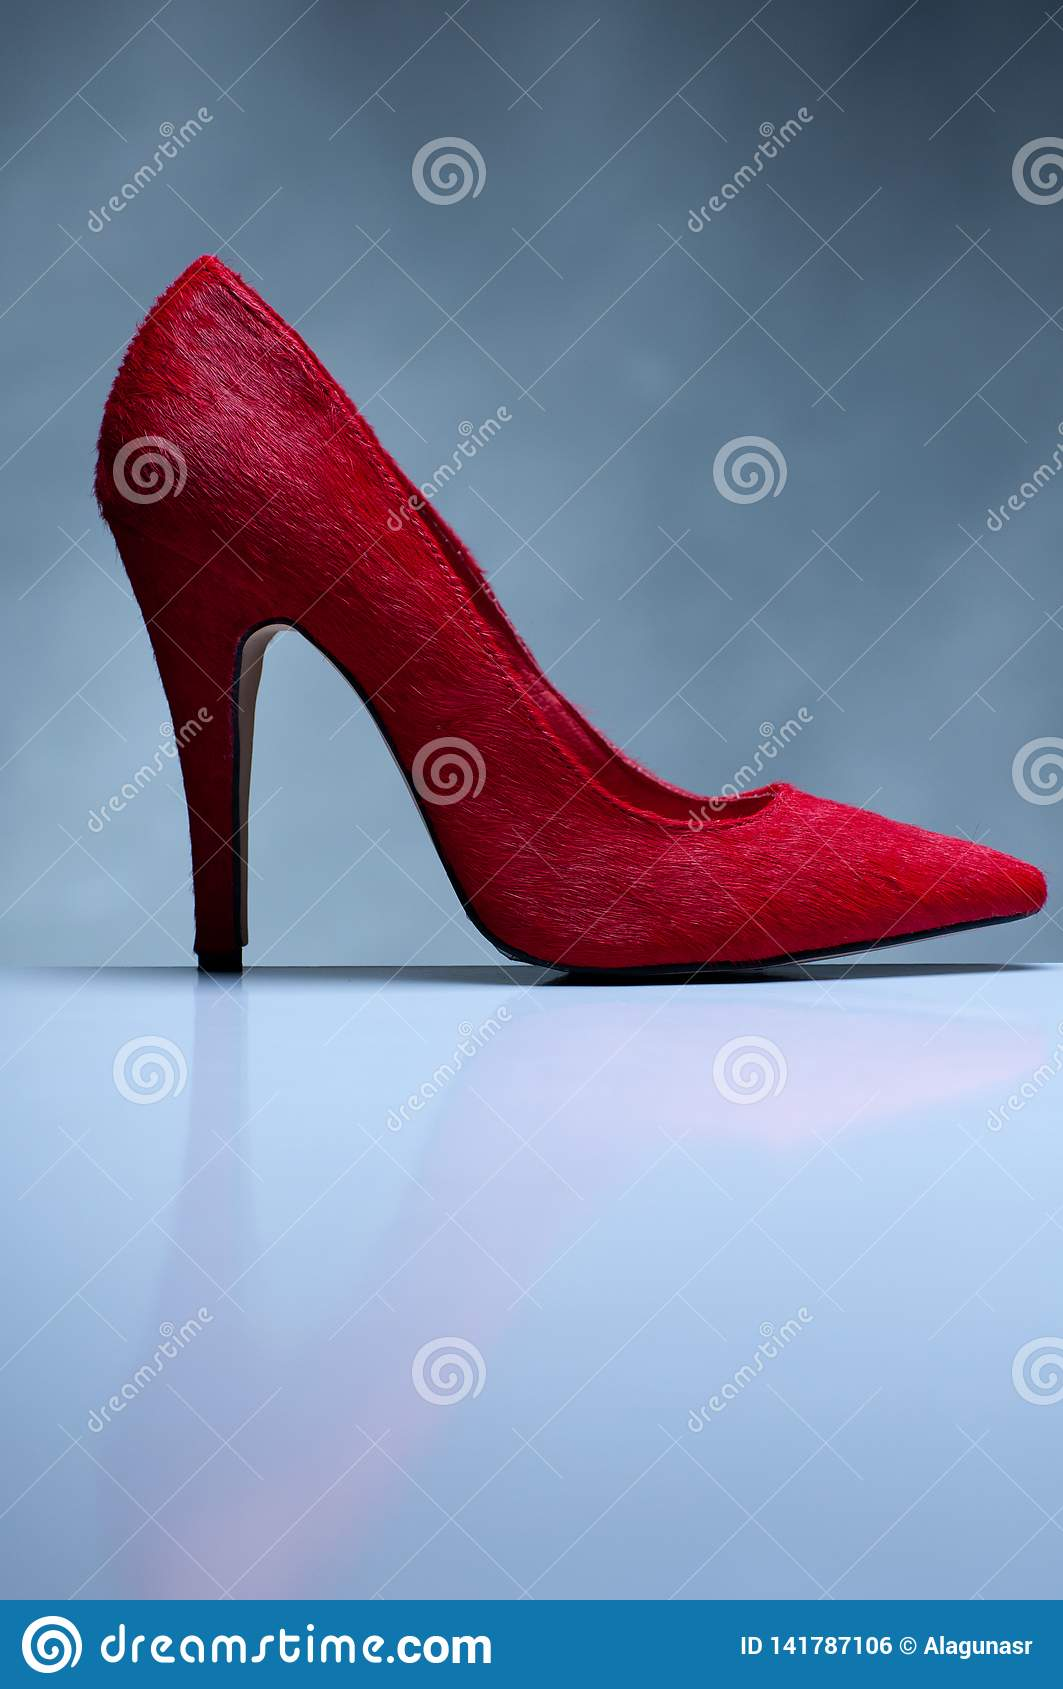 Red high heels on grey background